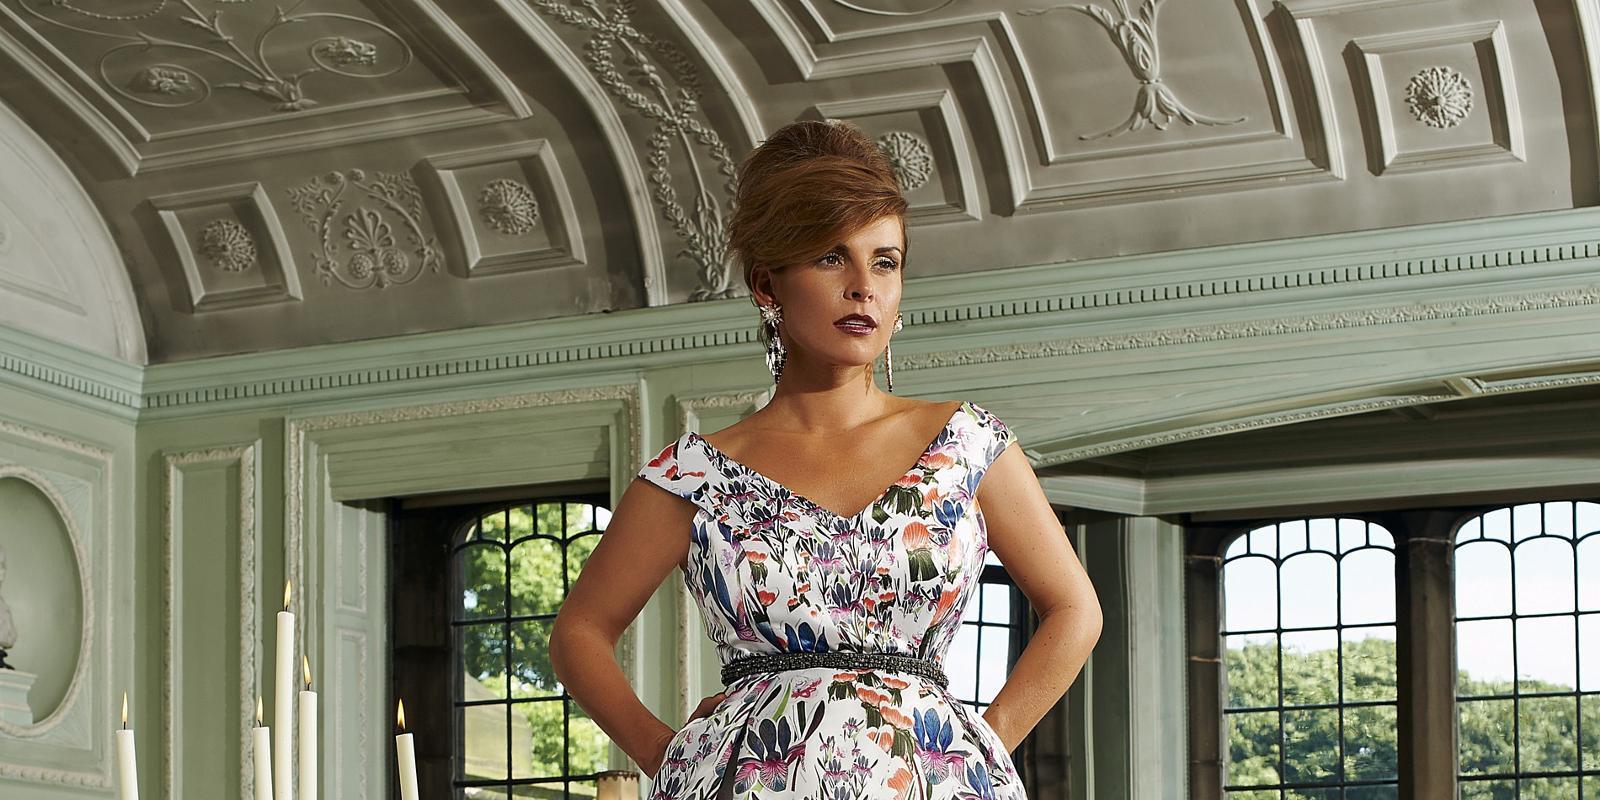 Coleen Rooney unveils fairytale-inspired Littlewoods clothing collection